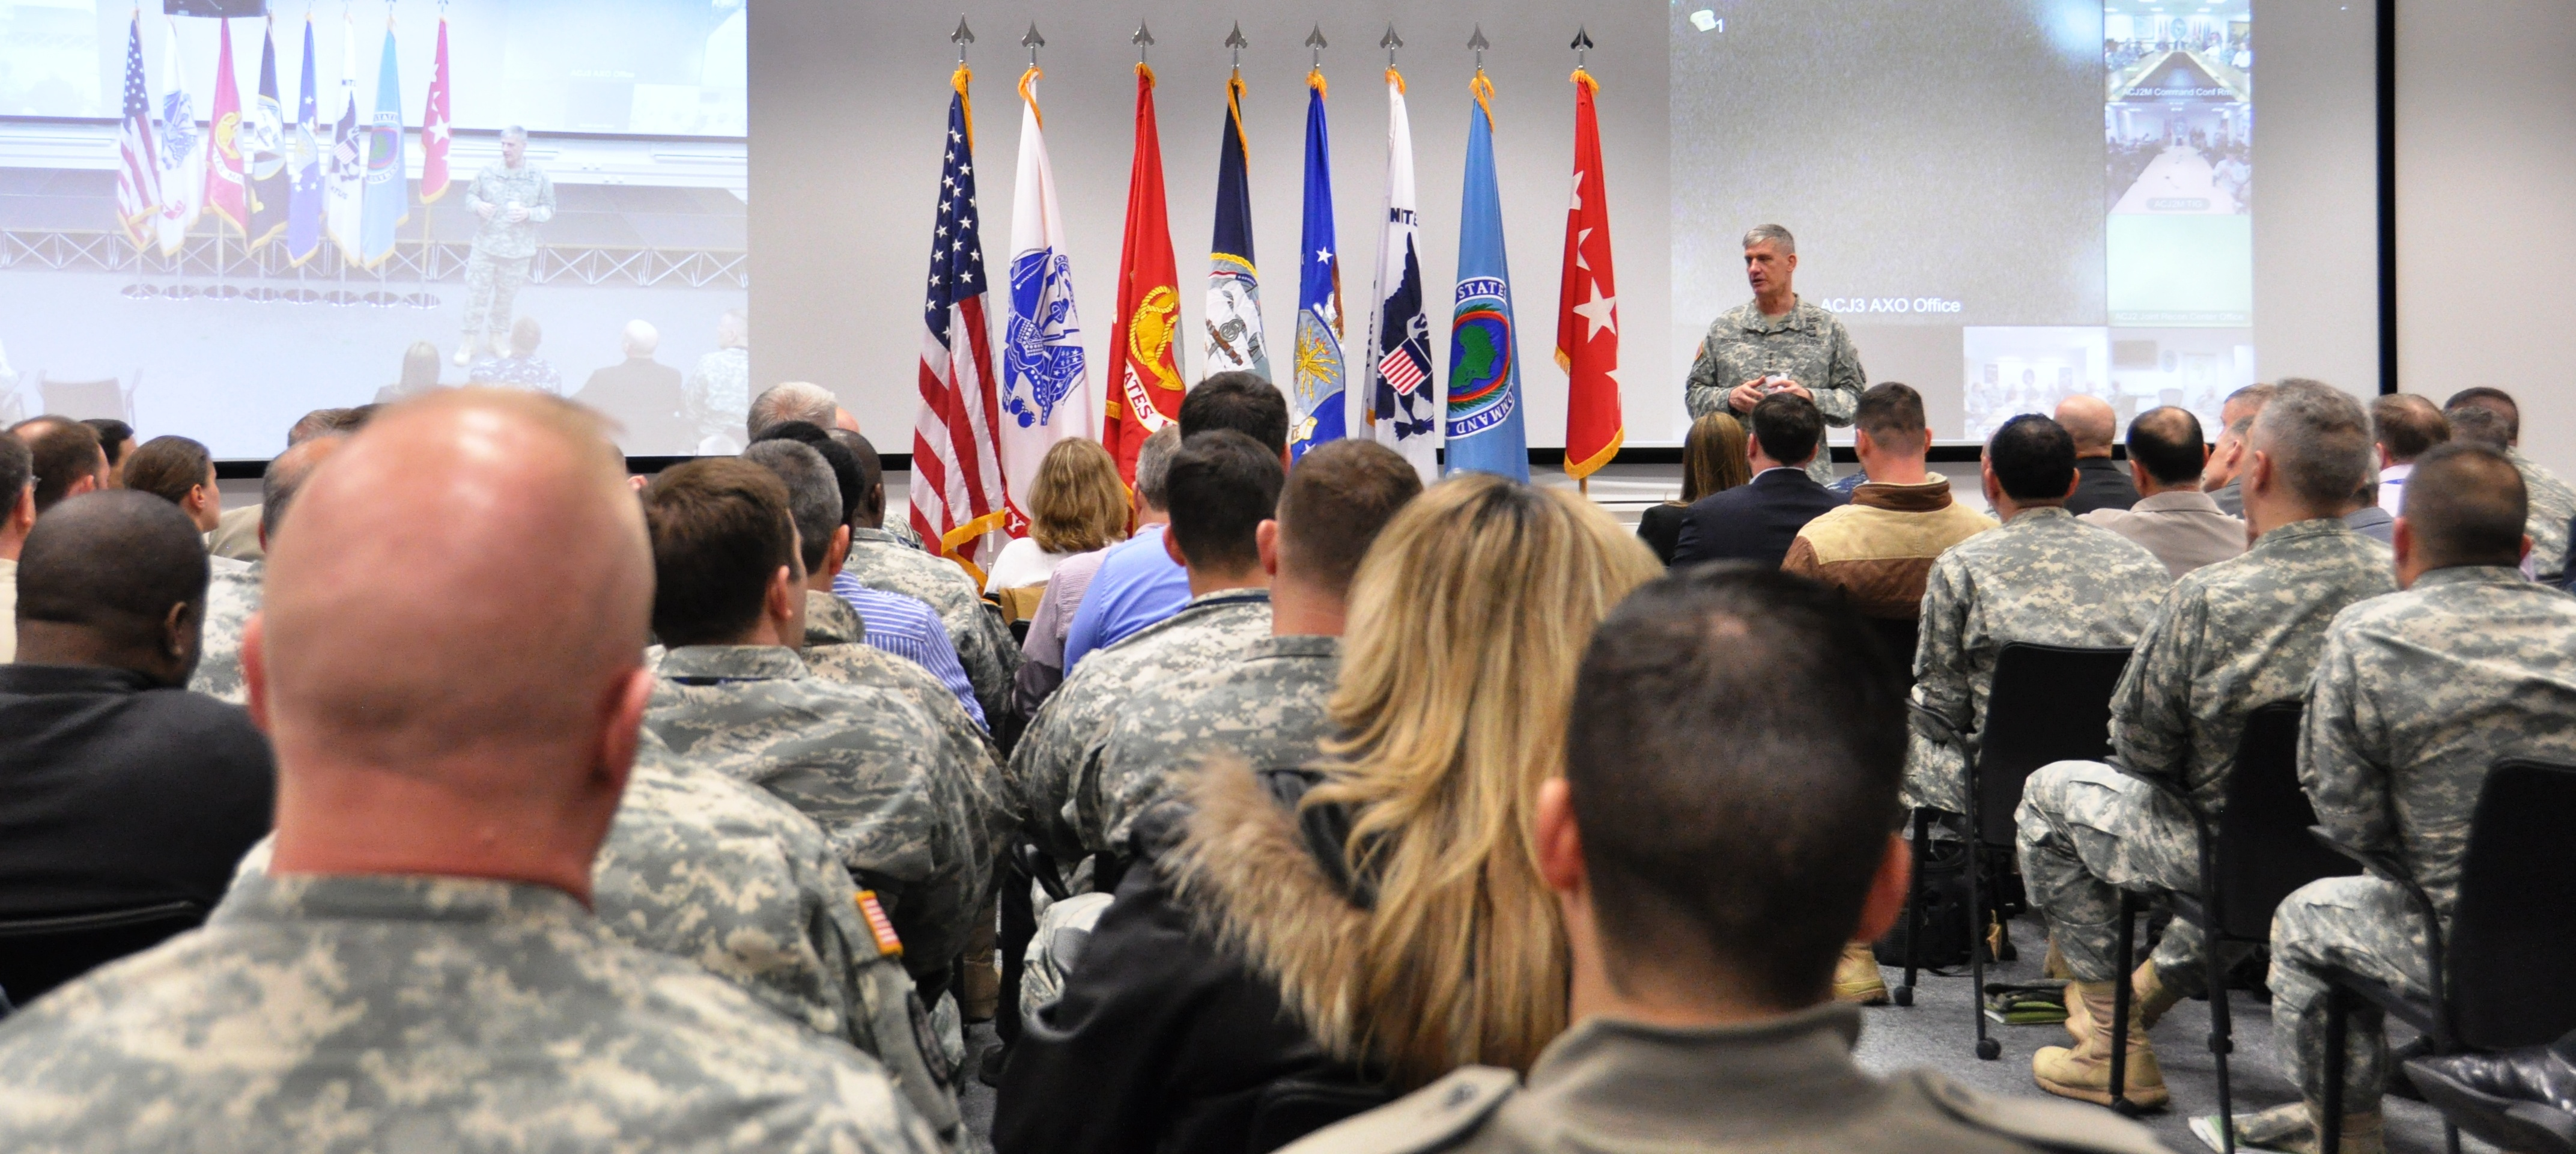 Gen. David M. Rodriguez, U.S. Africa Command commander, addresses staff members at the command's headquarters during an all-hands call at the event center here March 27, 2015. The all hands was held in conjunction with the 4th Quarter Awards ceremony.  (AFRICOM photo by Tech. Sgt. Olufemi A. Owolabi)